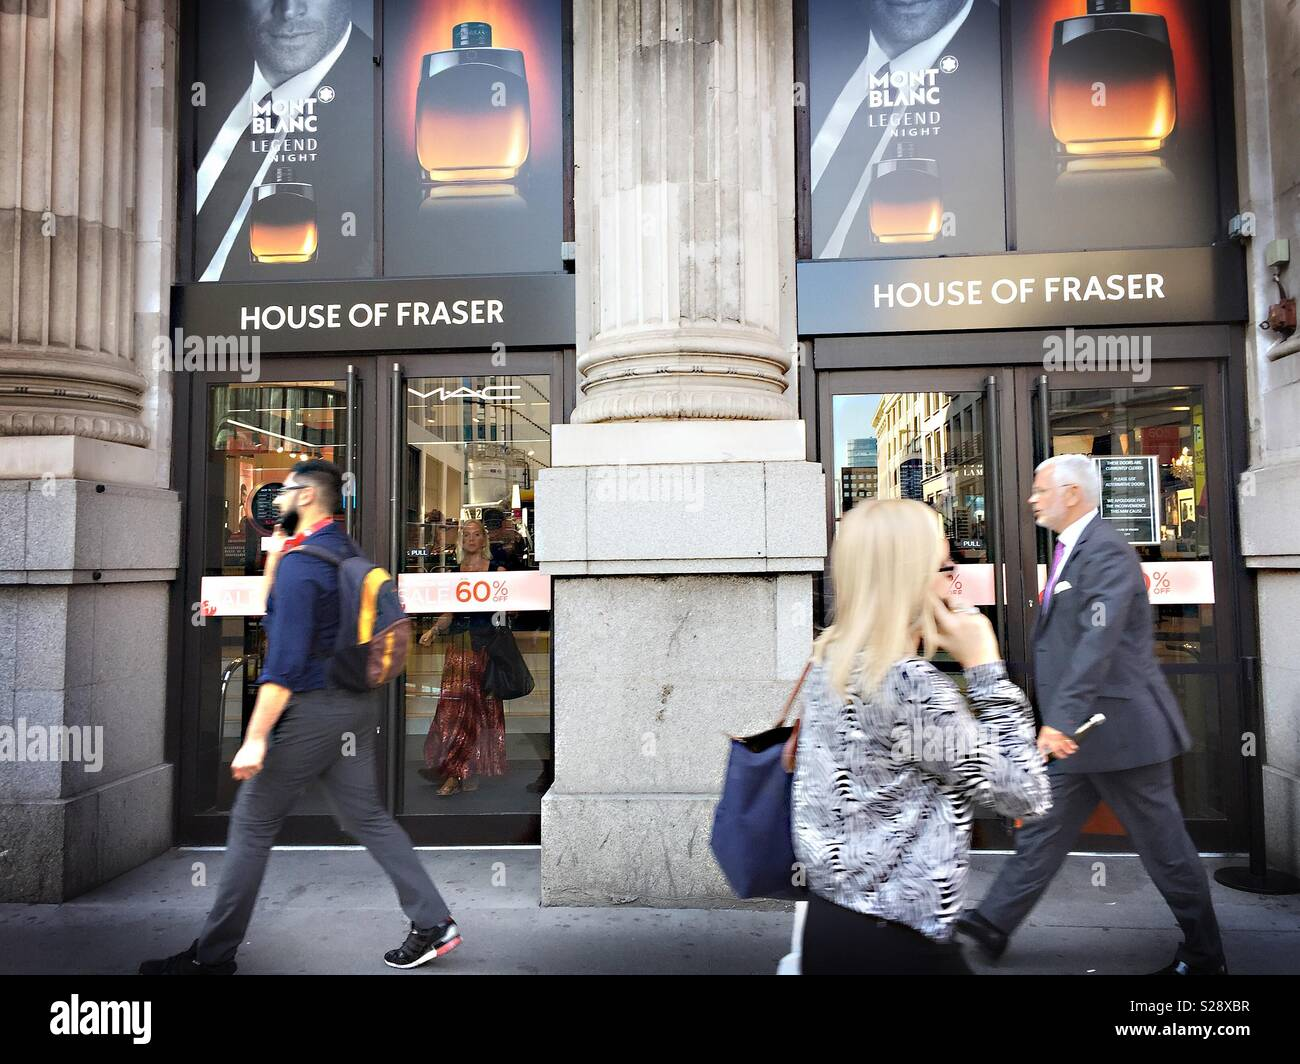 People walk past House of Fraser department store, with sale sign in window. Moorgate, London. UK - Stock Image